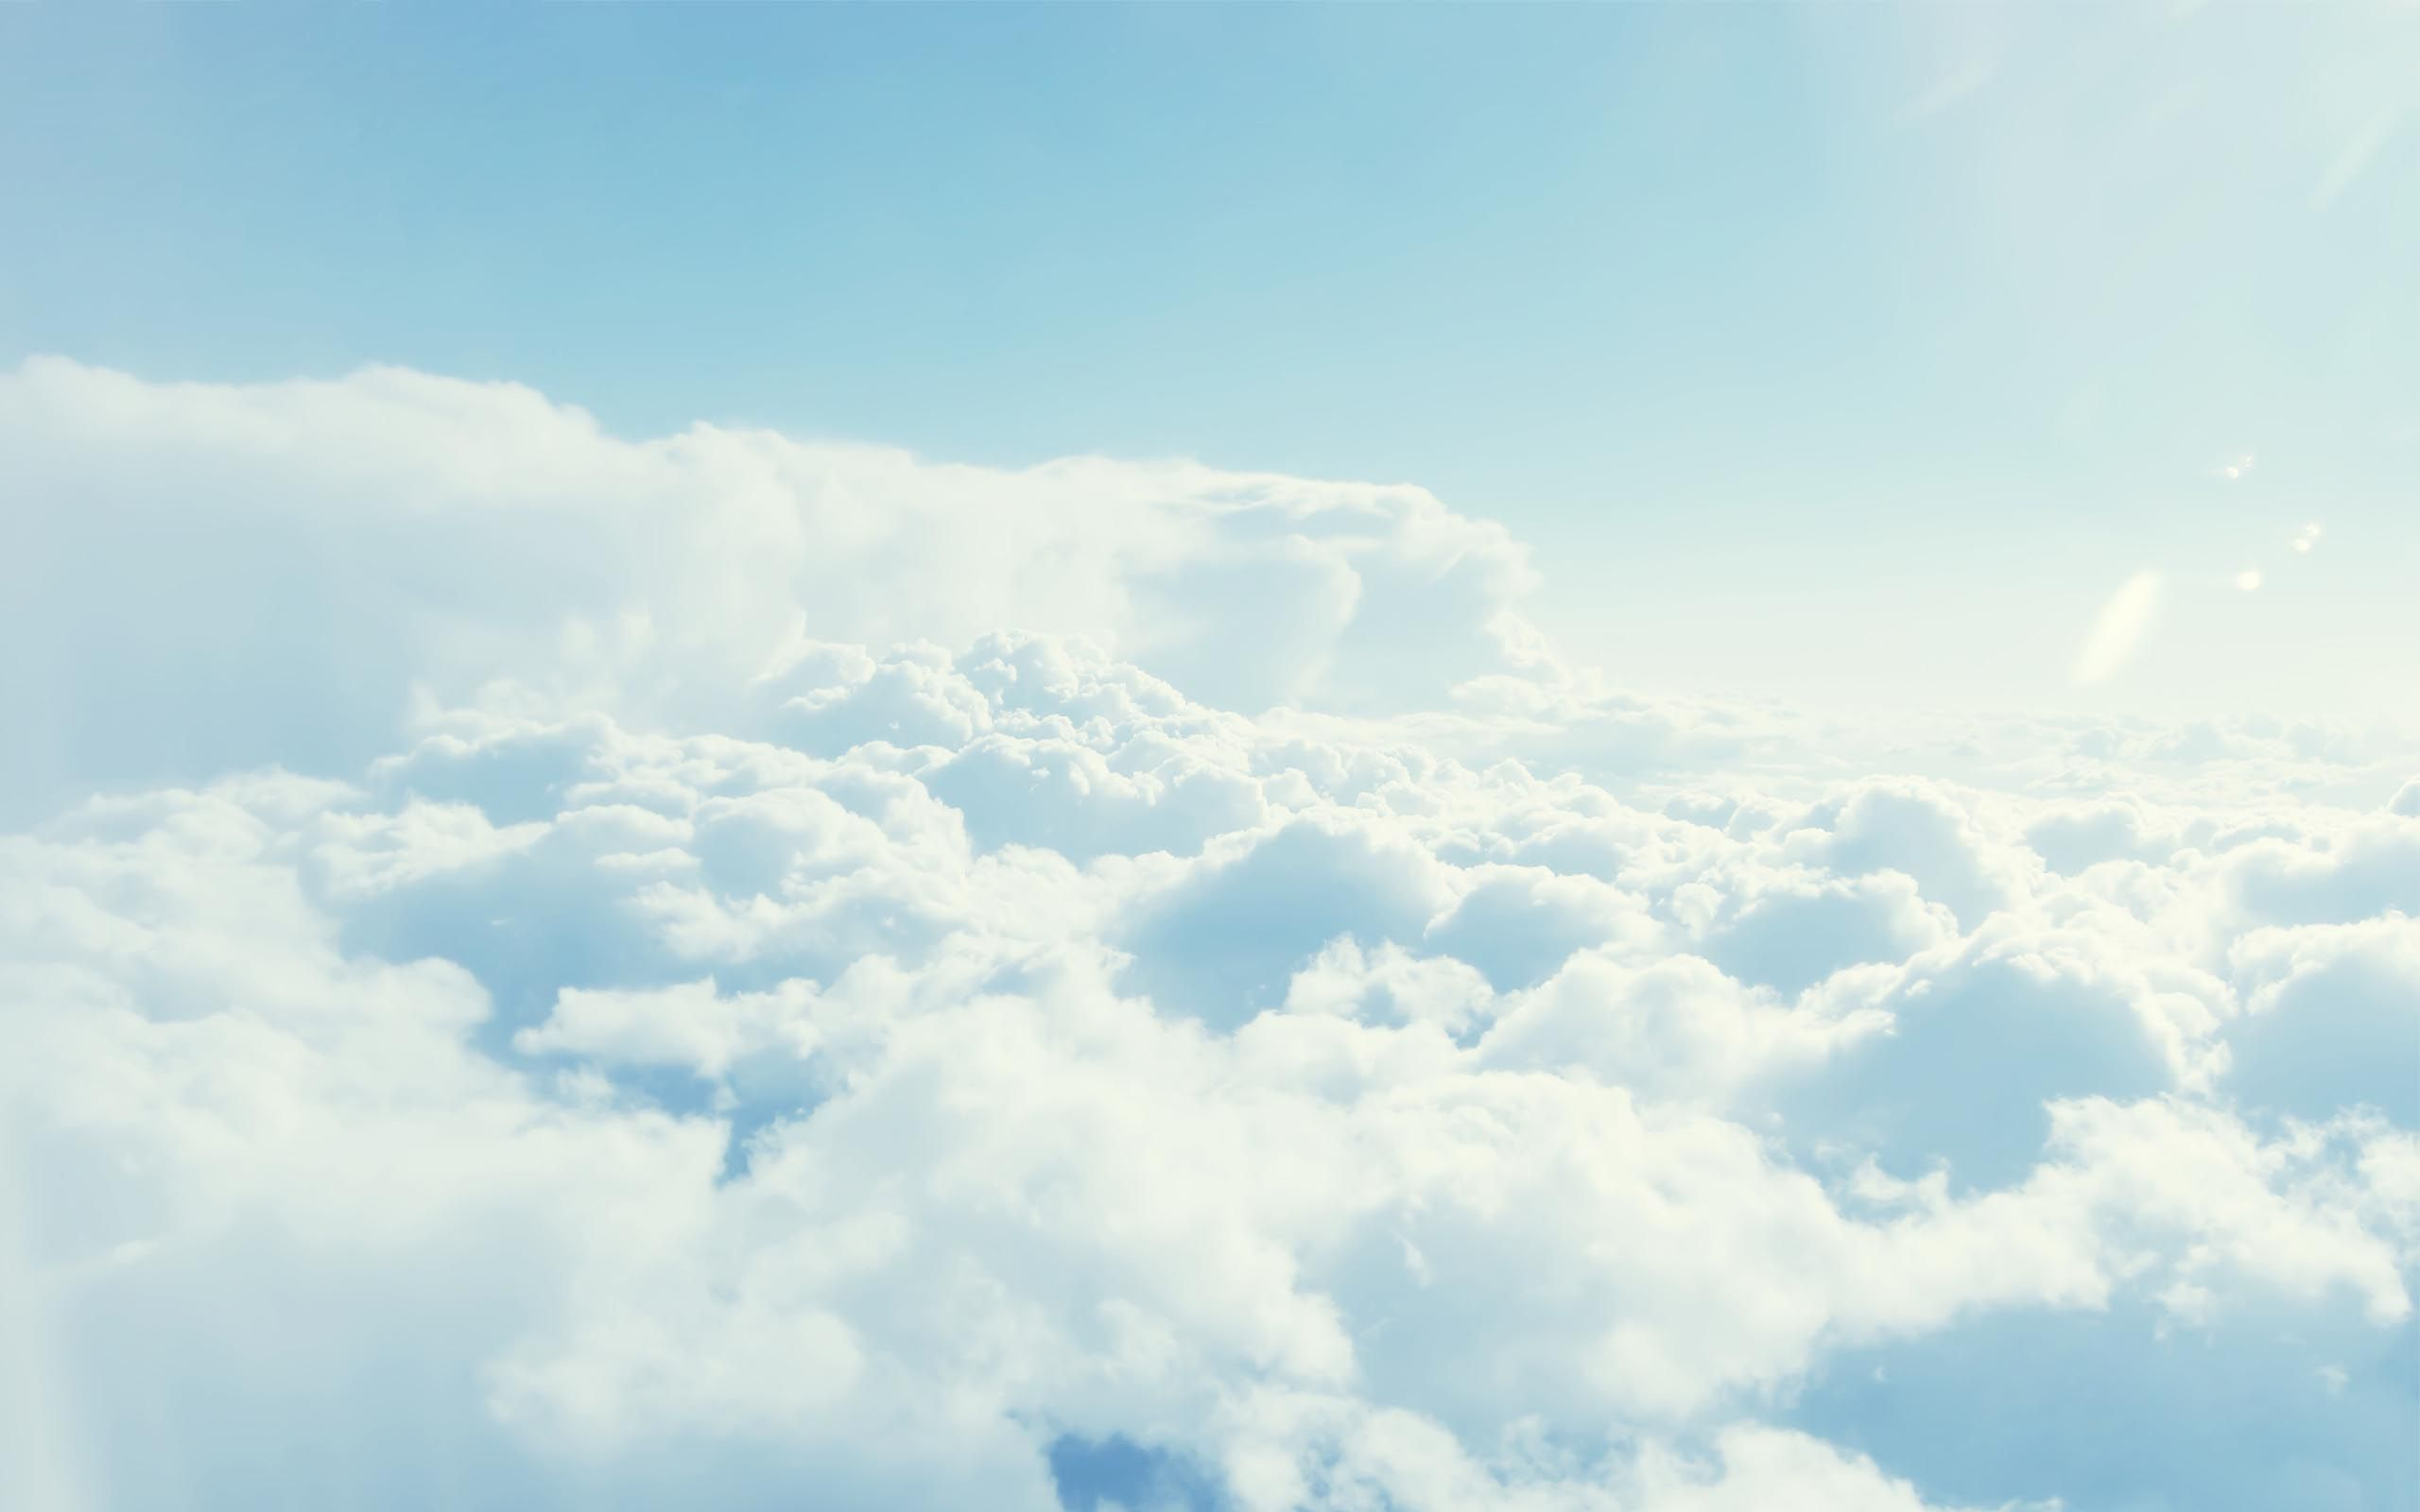 texture, background, clouds texture background, sky, download photo